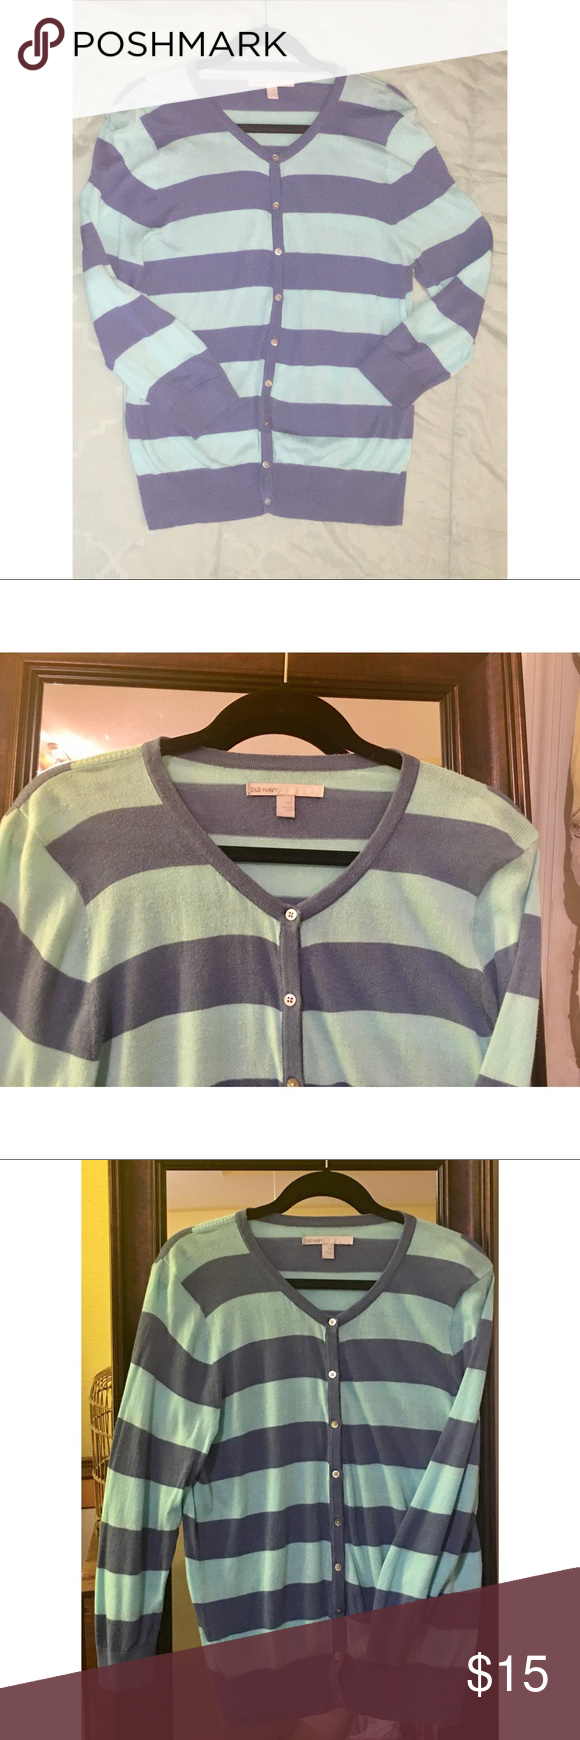 Old Navy Size L Striped Sweater Super cozy striped sweater from ...